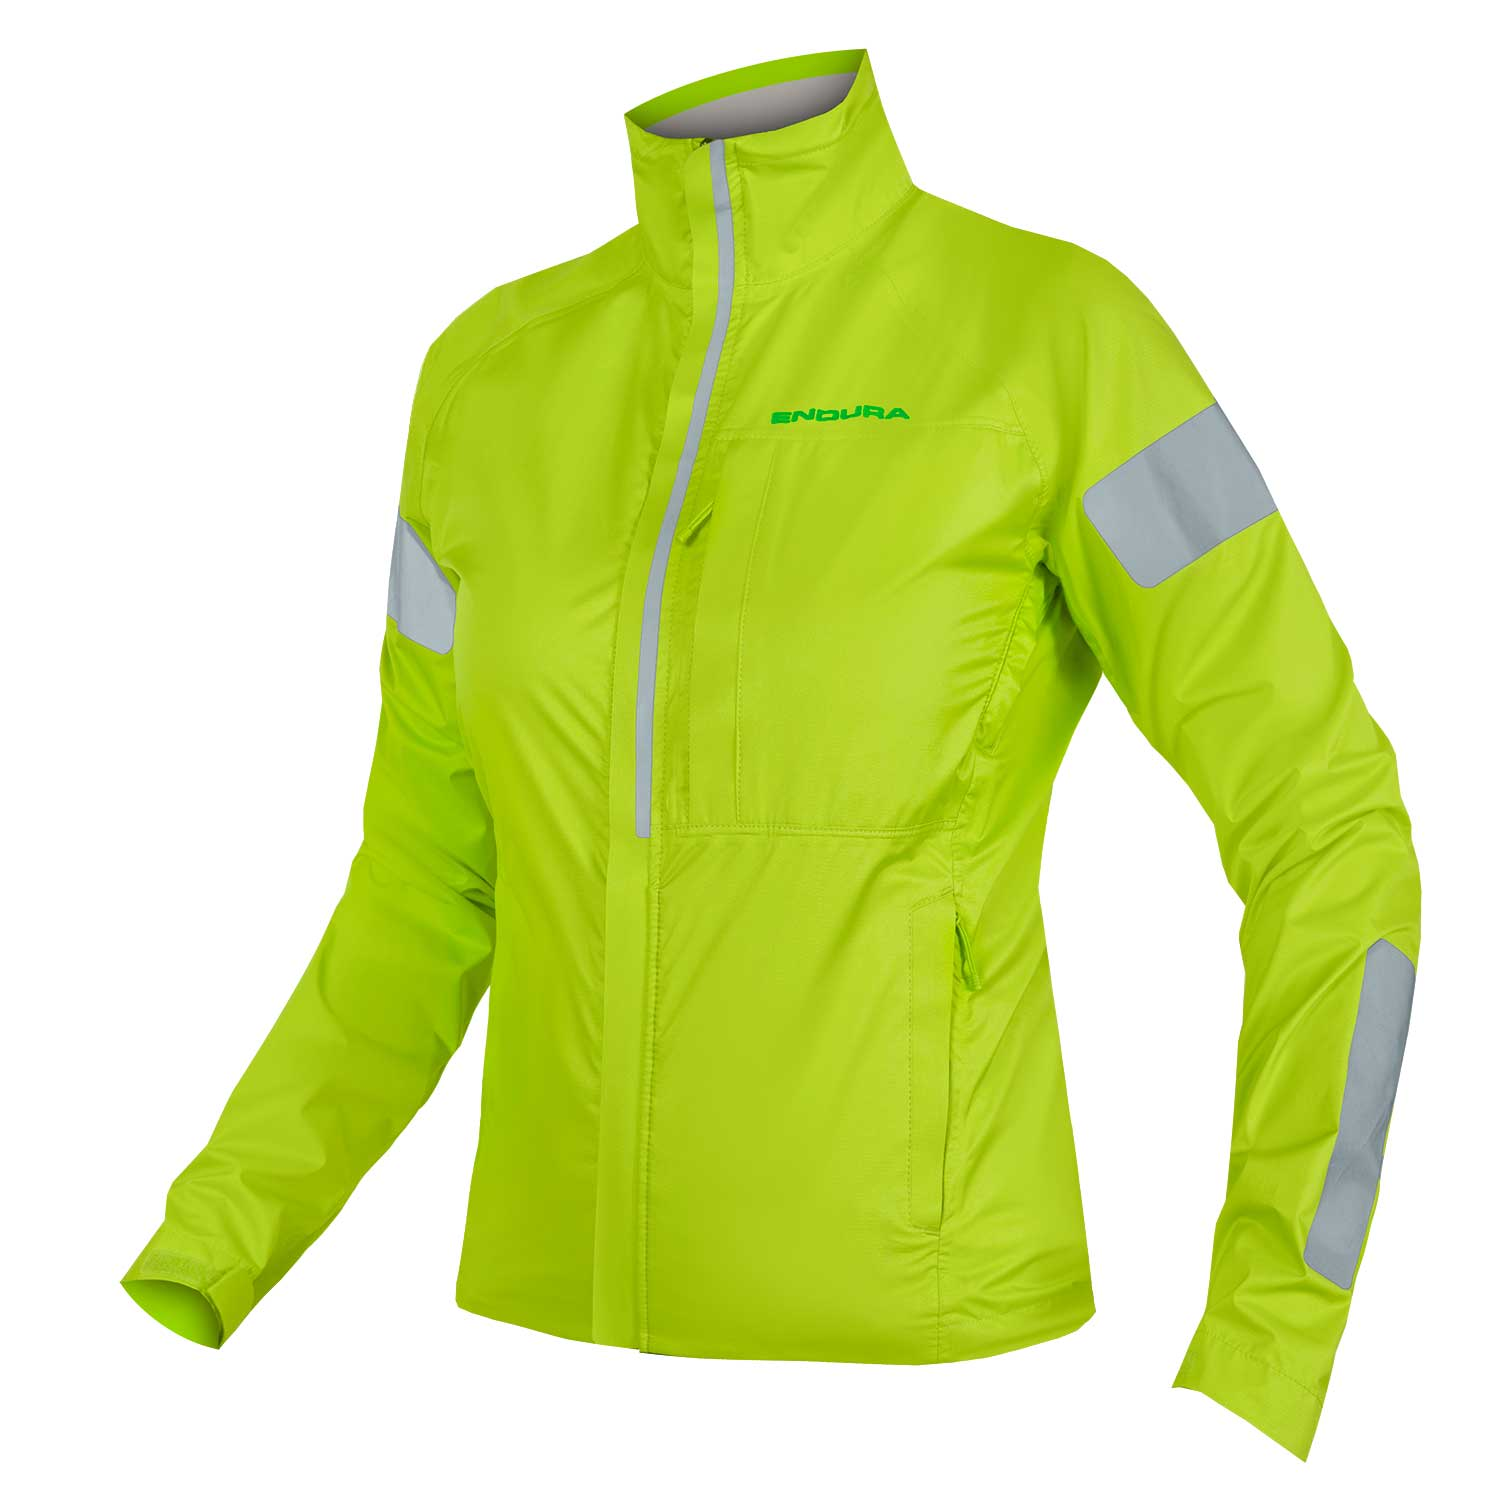 Wms Urban Luminite Jacket Hi-Viz Yellow